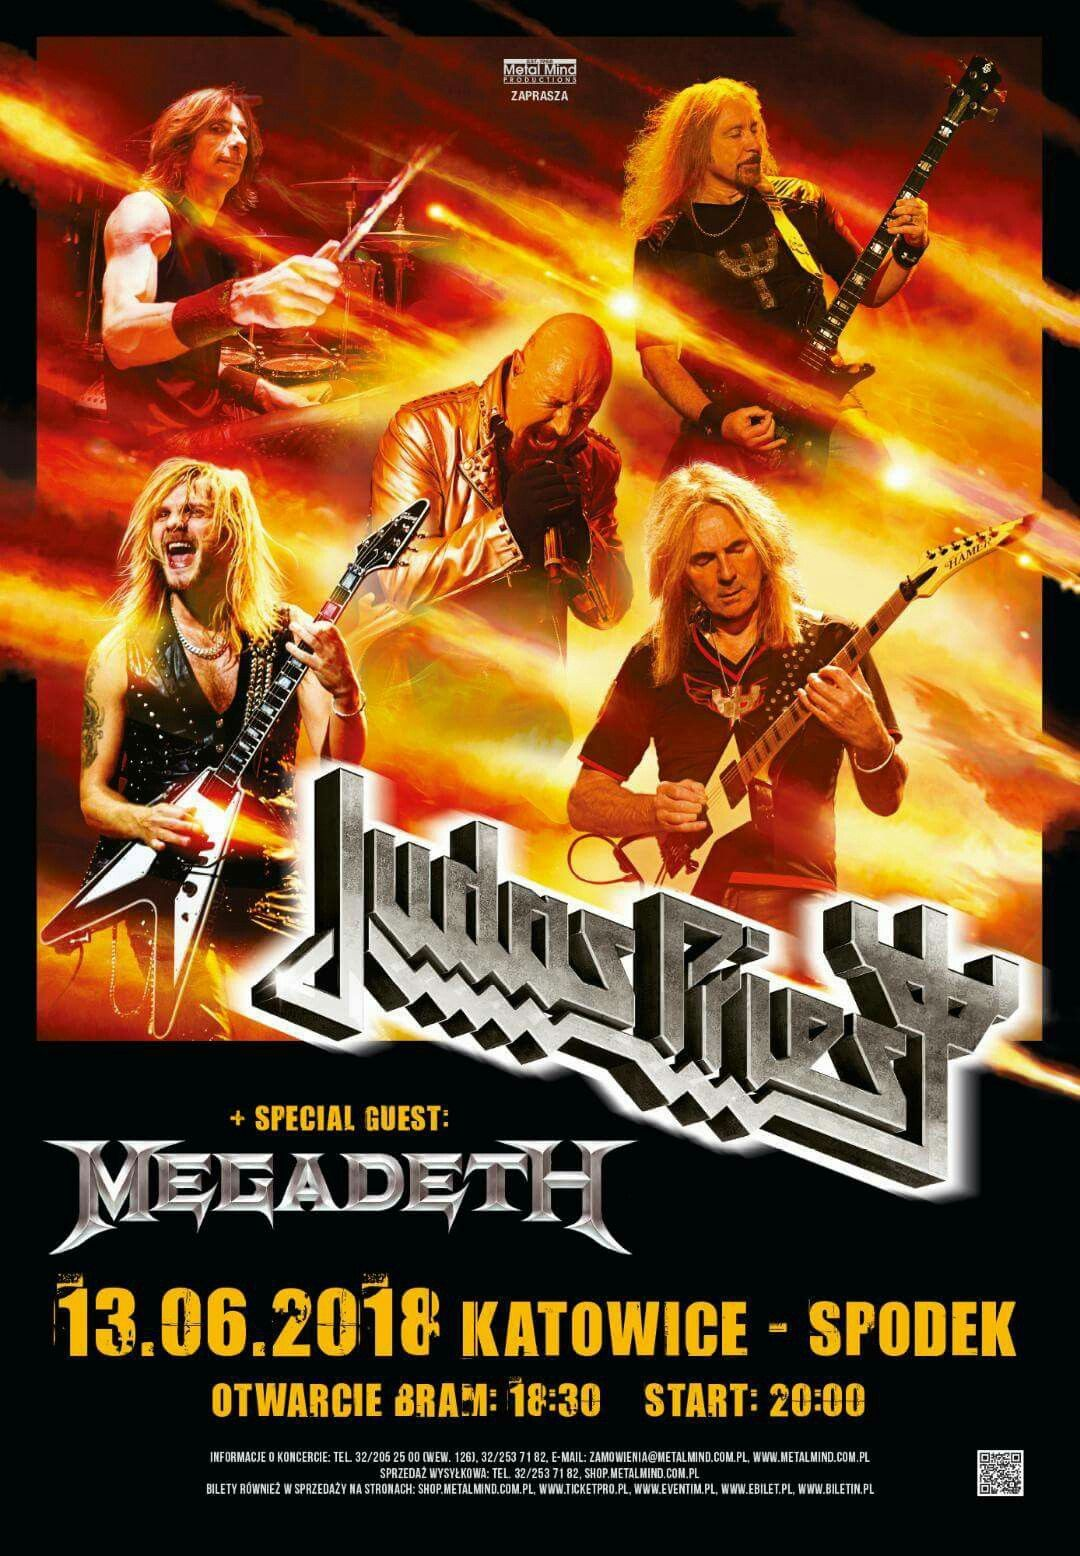 ea43bb7c3 New Judas Priest Video! Music Is Life, Concert Tickets, Concert Posters,  Tour Posters, Art Posters,